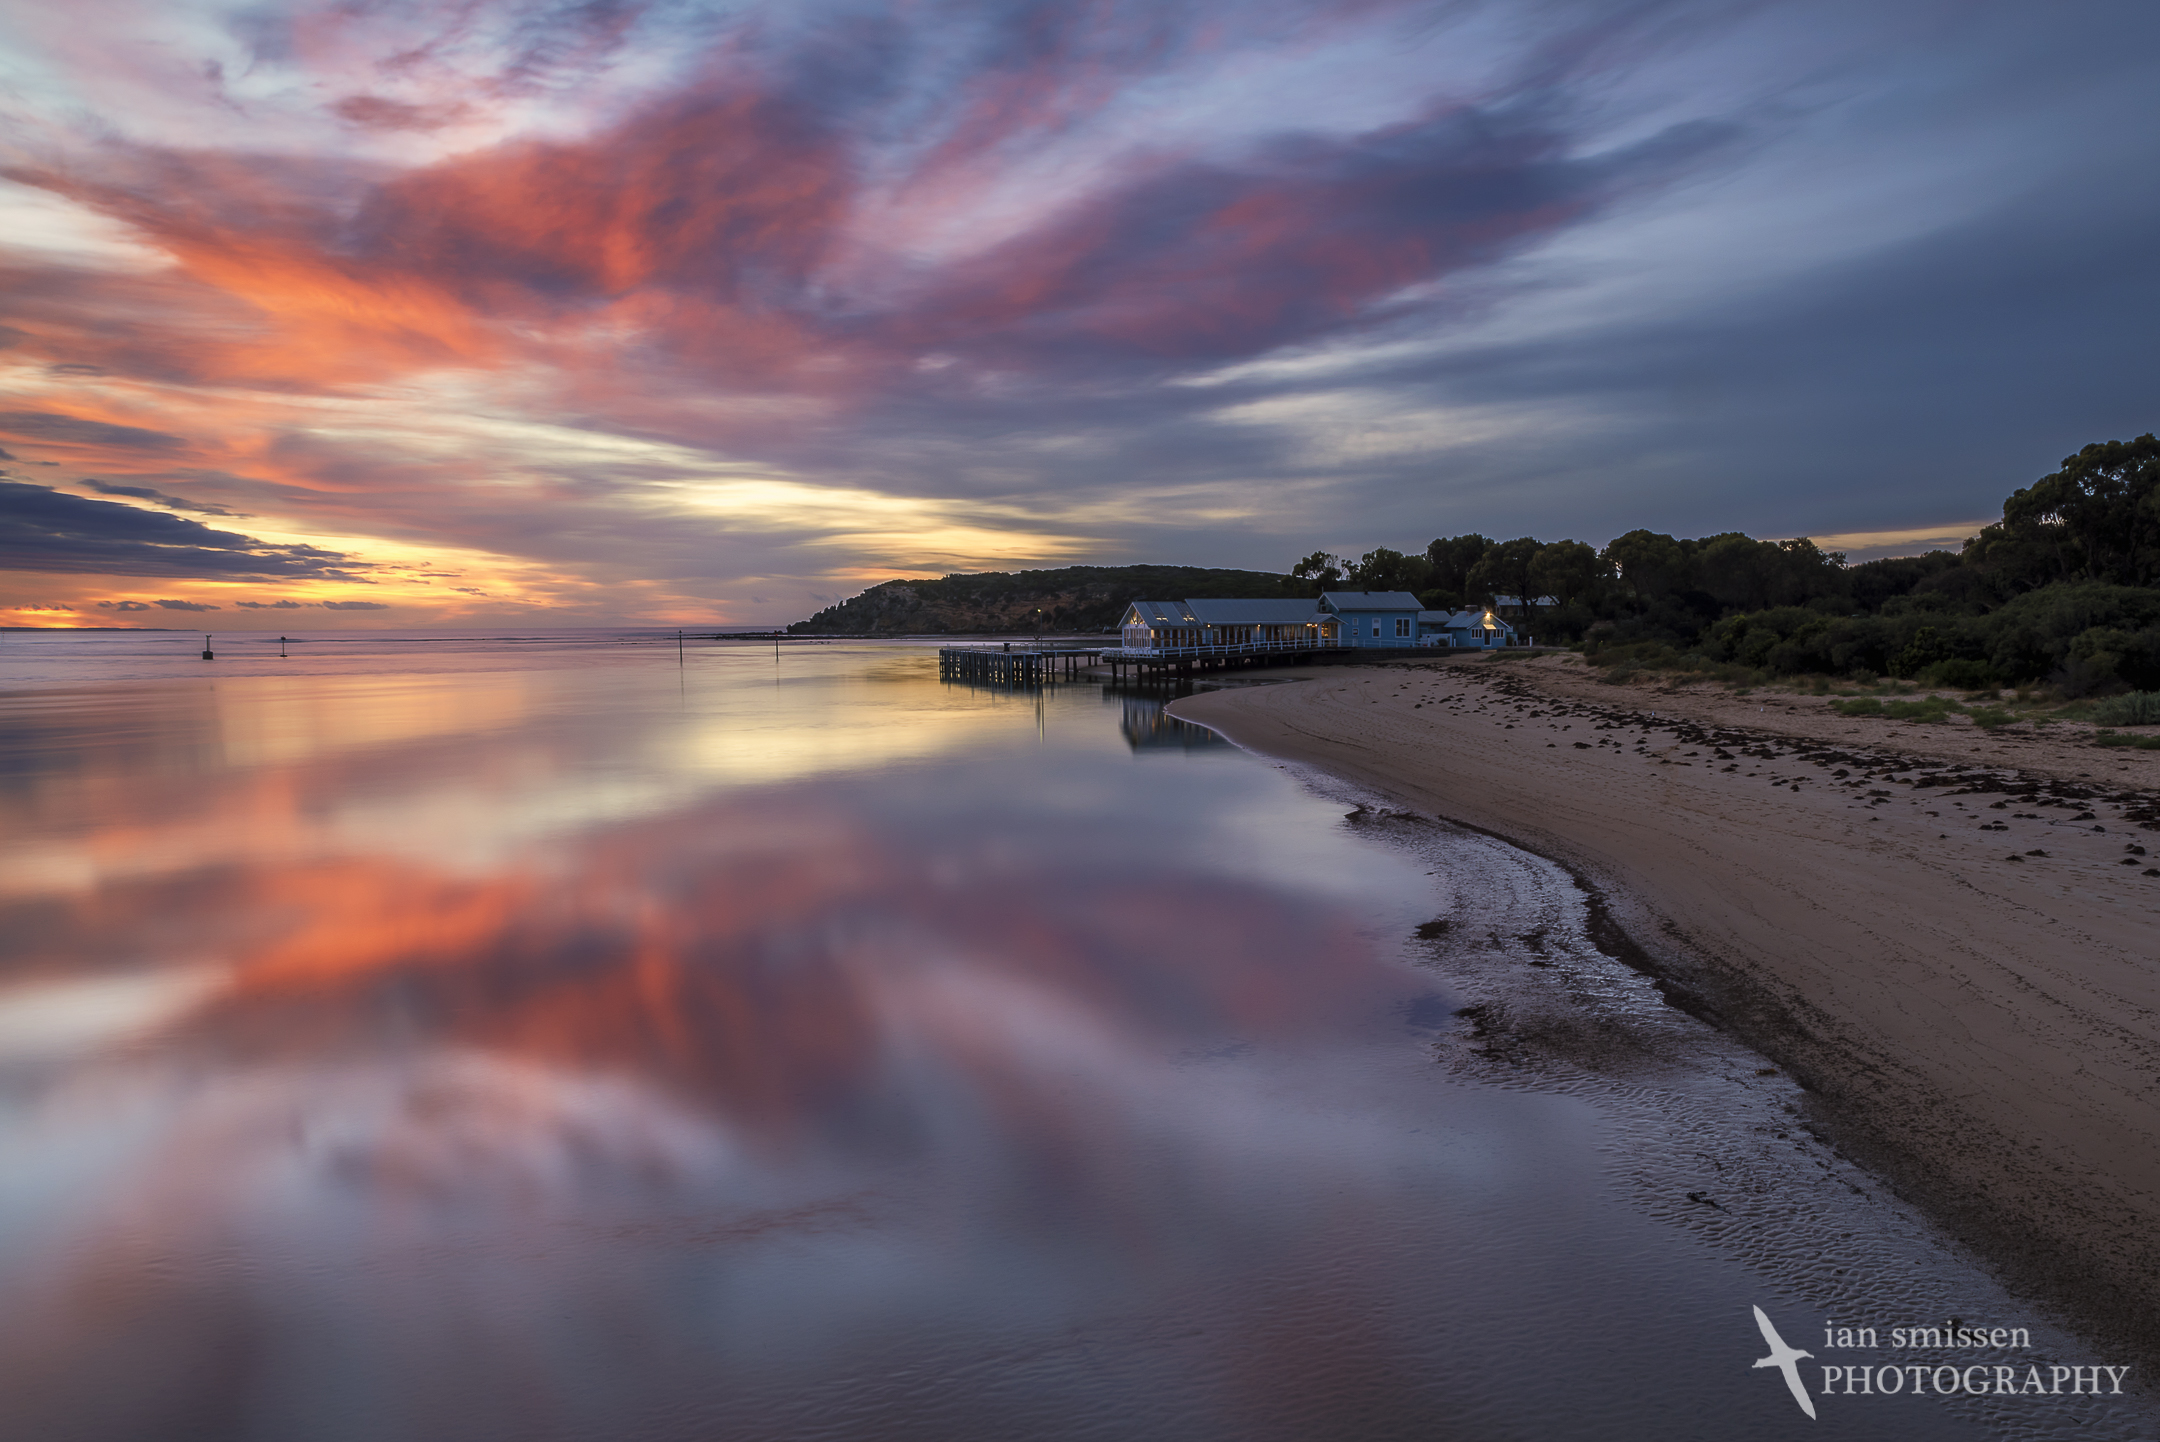 ISO 100, 24mm, 8 seconds at f/22, circular polariser +3-stop ND + 4-stop graduated ND filters